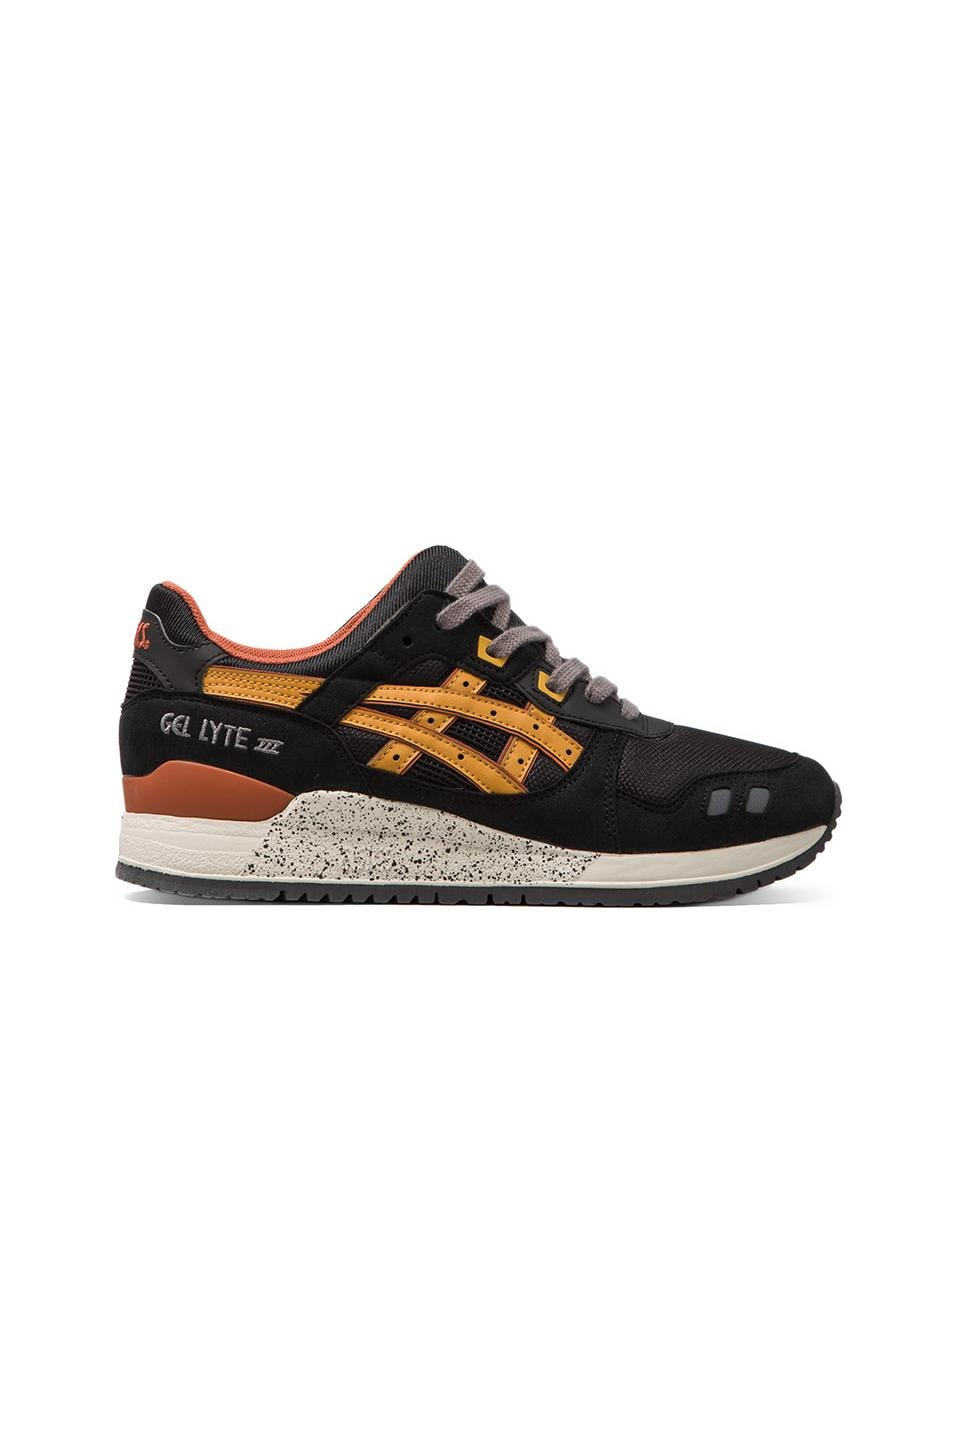 Asics Gel Lyte III in Black/Tan